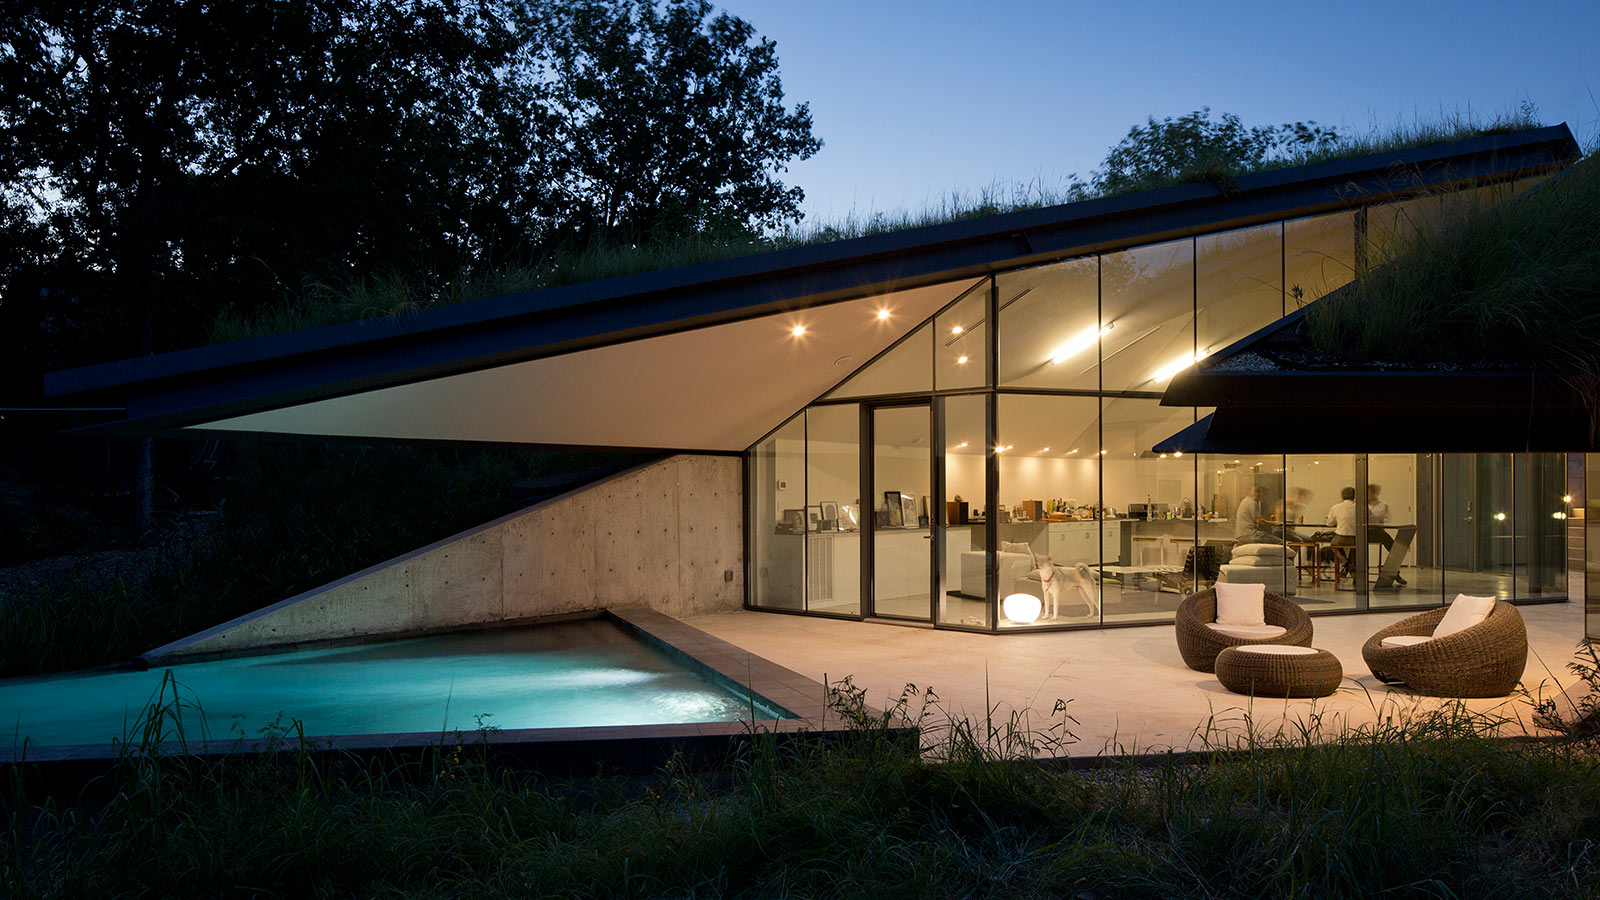 Futuristic House Amazing Edgeland Residence A Futuristic House With A Smart Pool Fit For A Inspiration Design